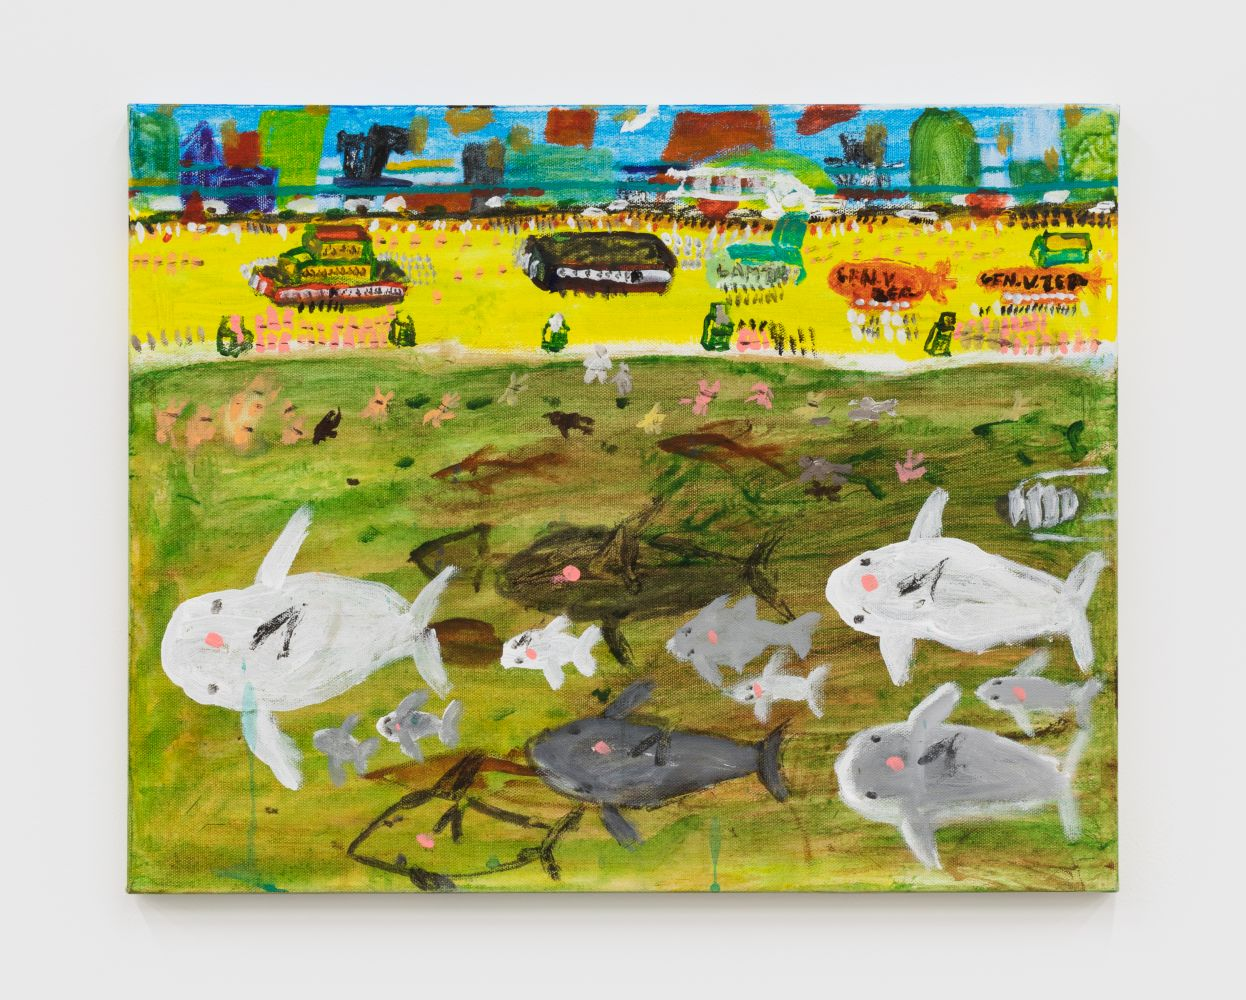 Raynes Birkbeck, Whale Watch, 2020. Oil and acrylic on canvas, 16 x 20 in, 40.6 x 50.8 cm (RBI20.011)